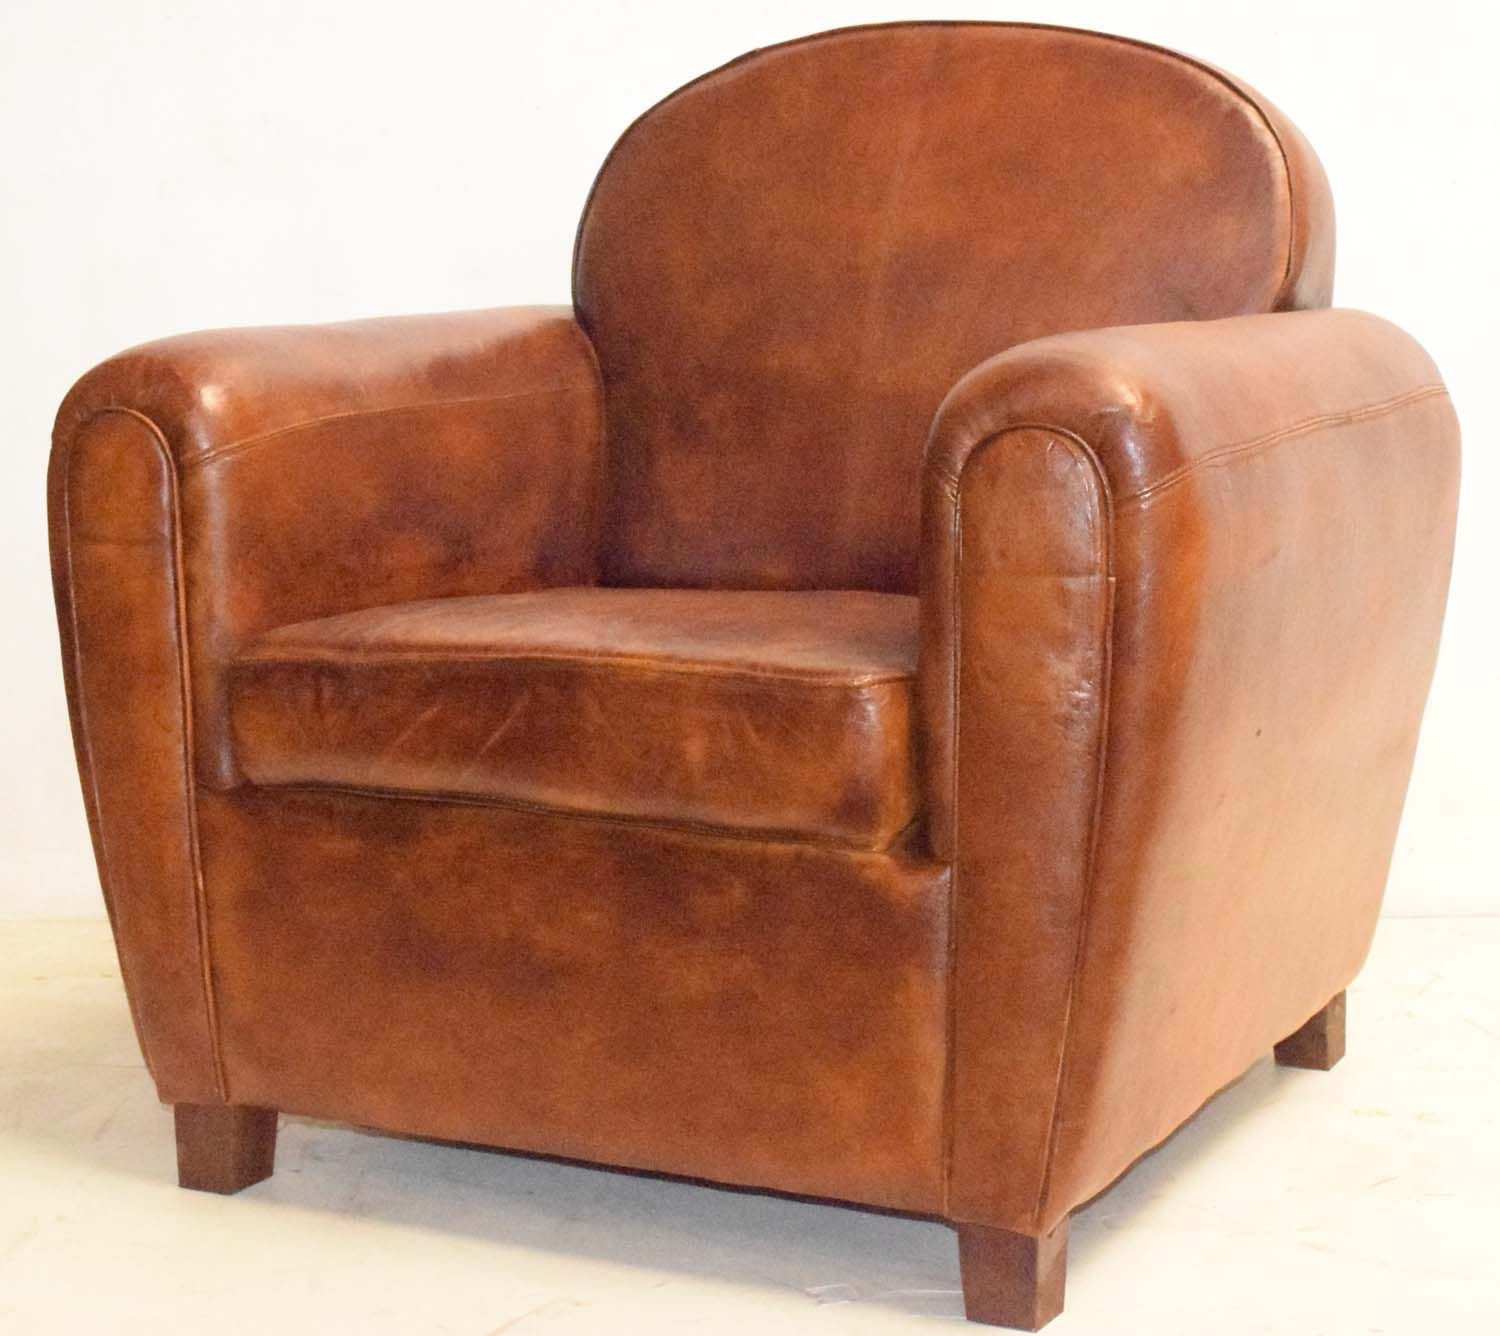 Genuine Leather Couch Vintage Industrial Furniture Pinterest